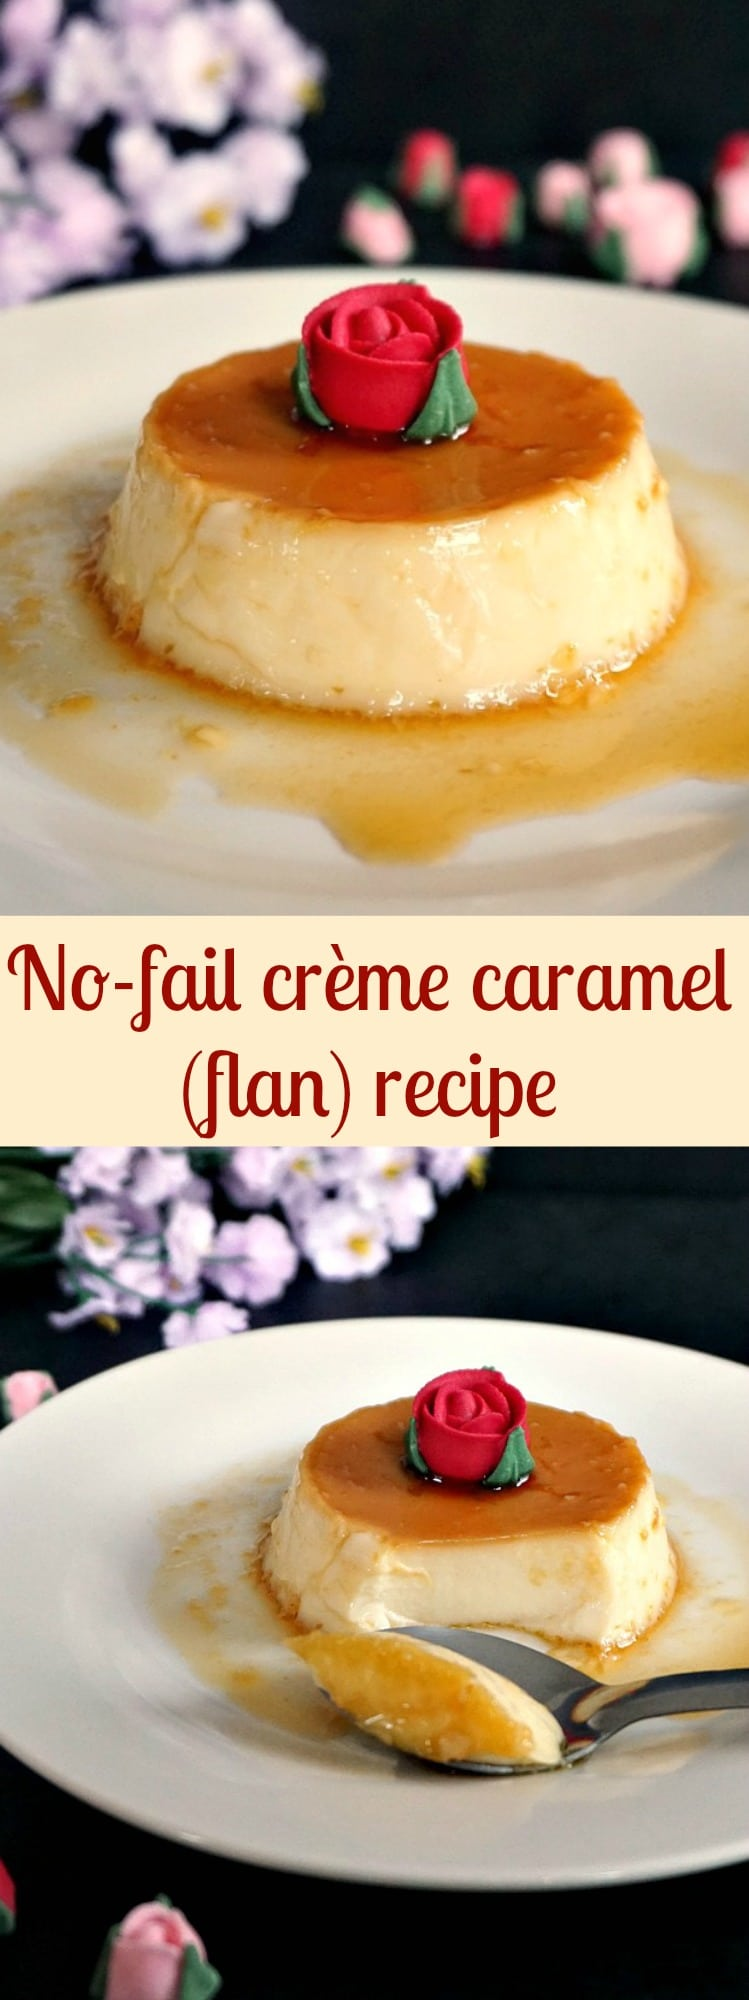 No-fail crème caramel (flan) recipe